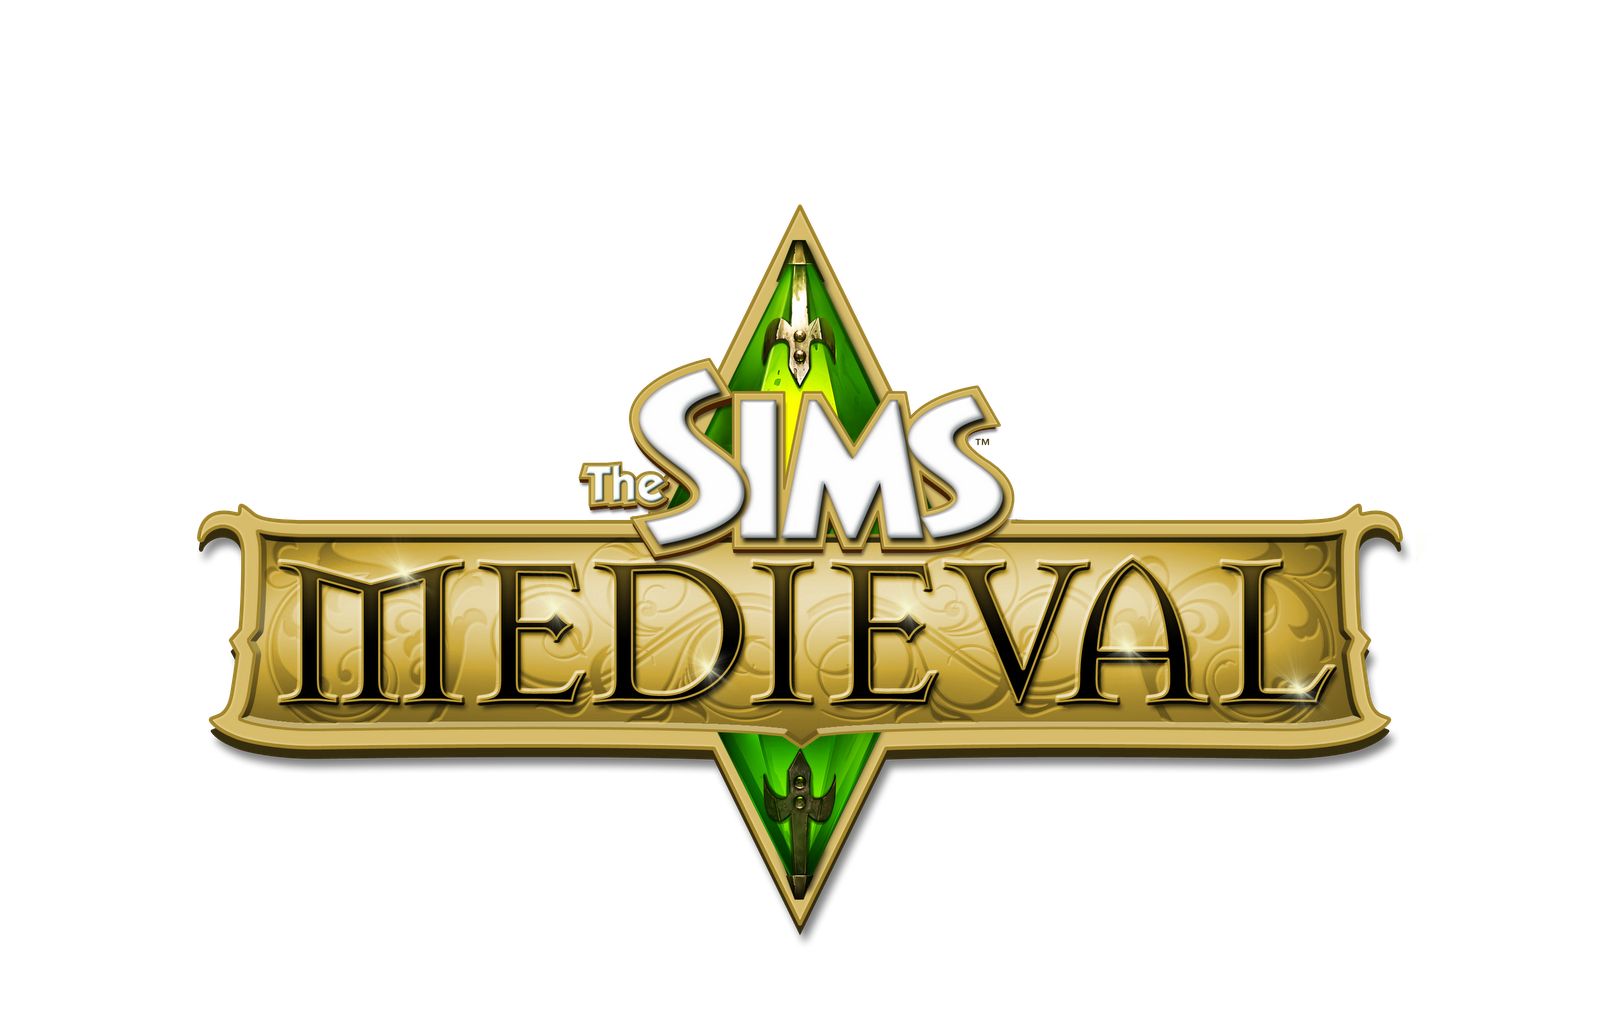 The Sims Medieval by Thesims3design